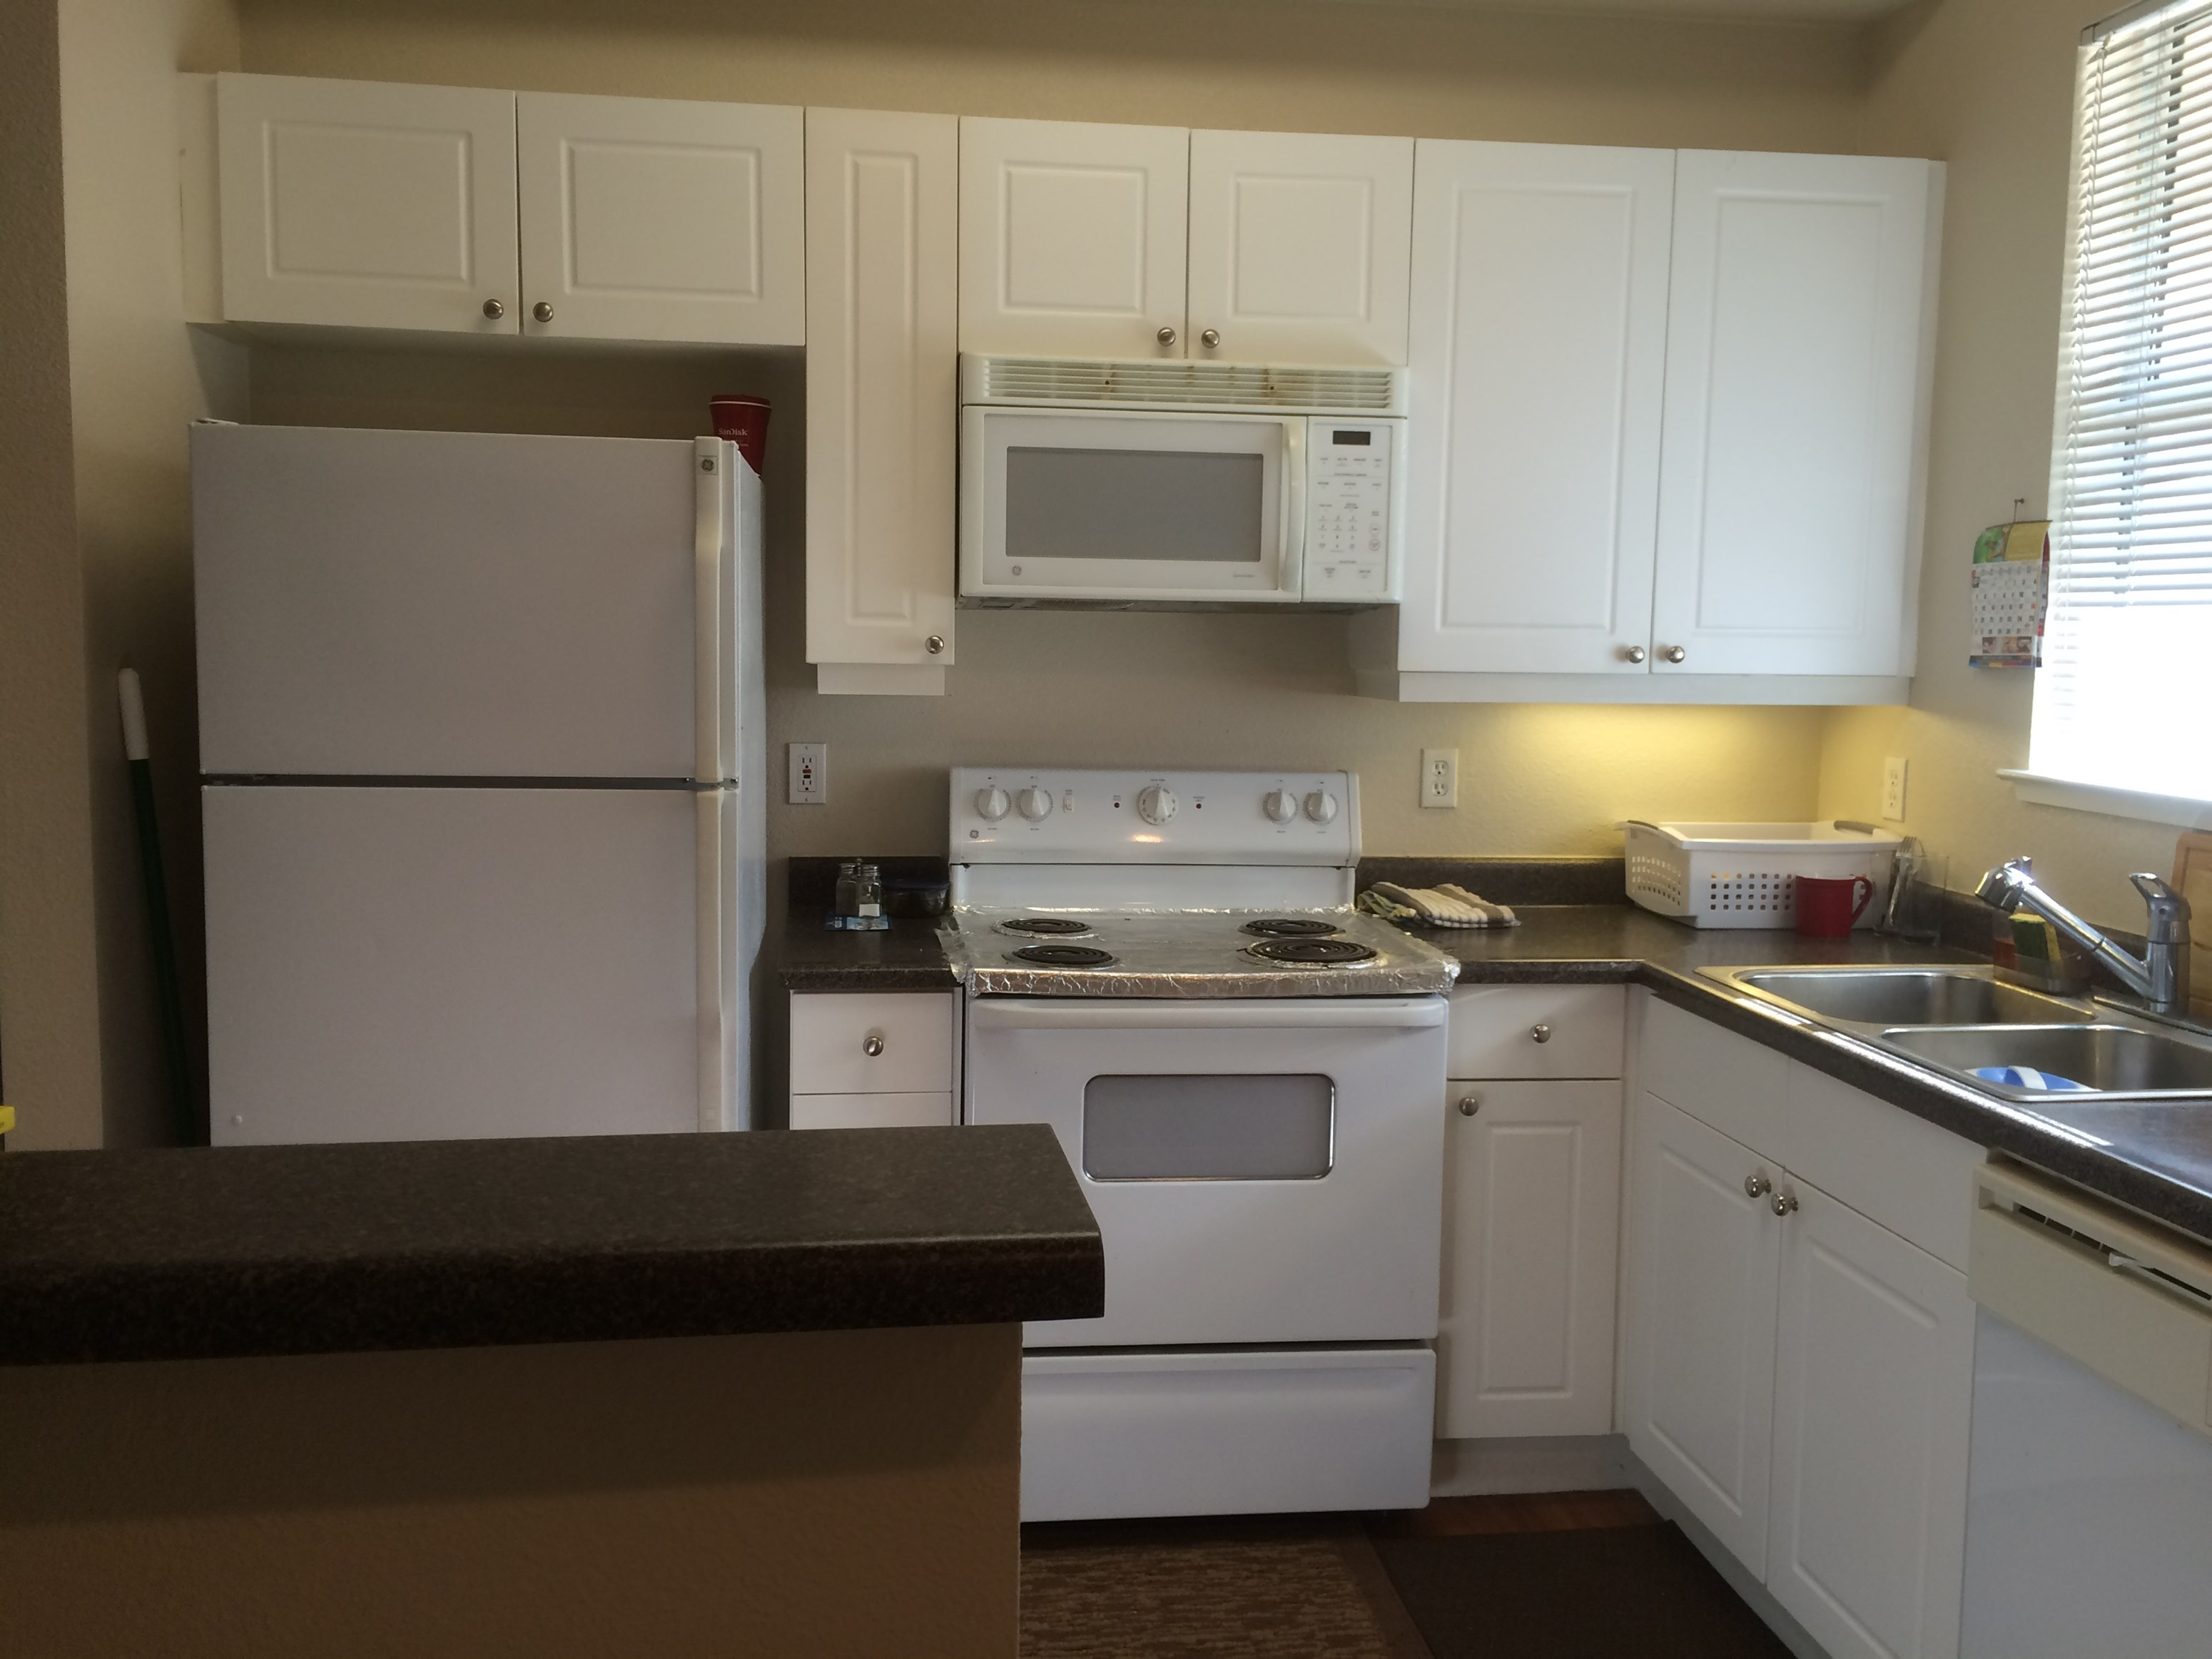 House For Rent In Fremont Ca Apartments Flats Commercial Space Individual House For